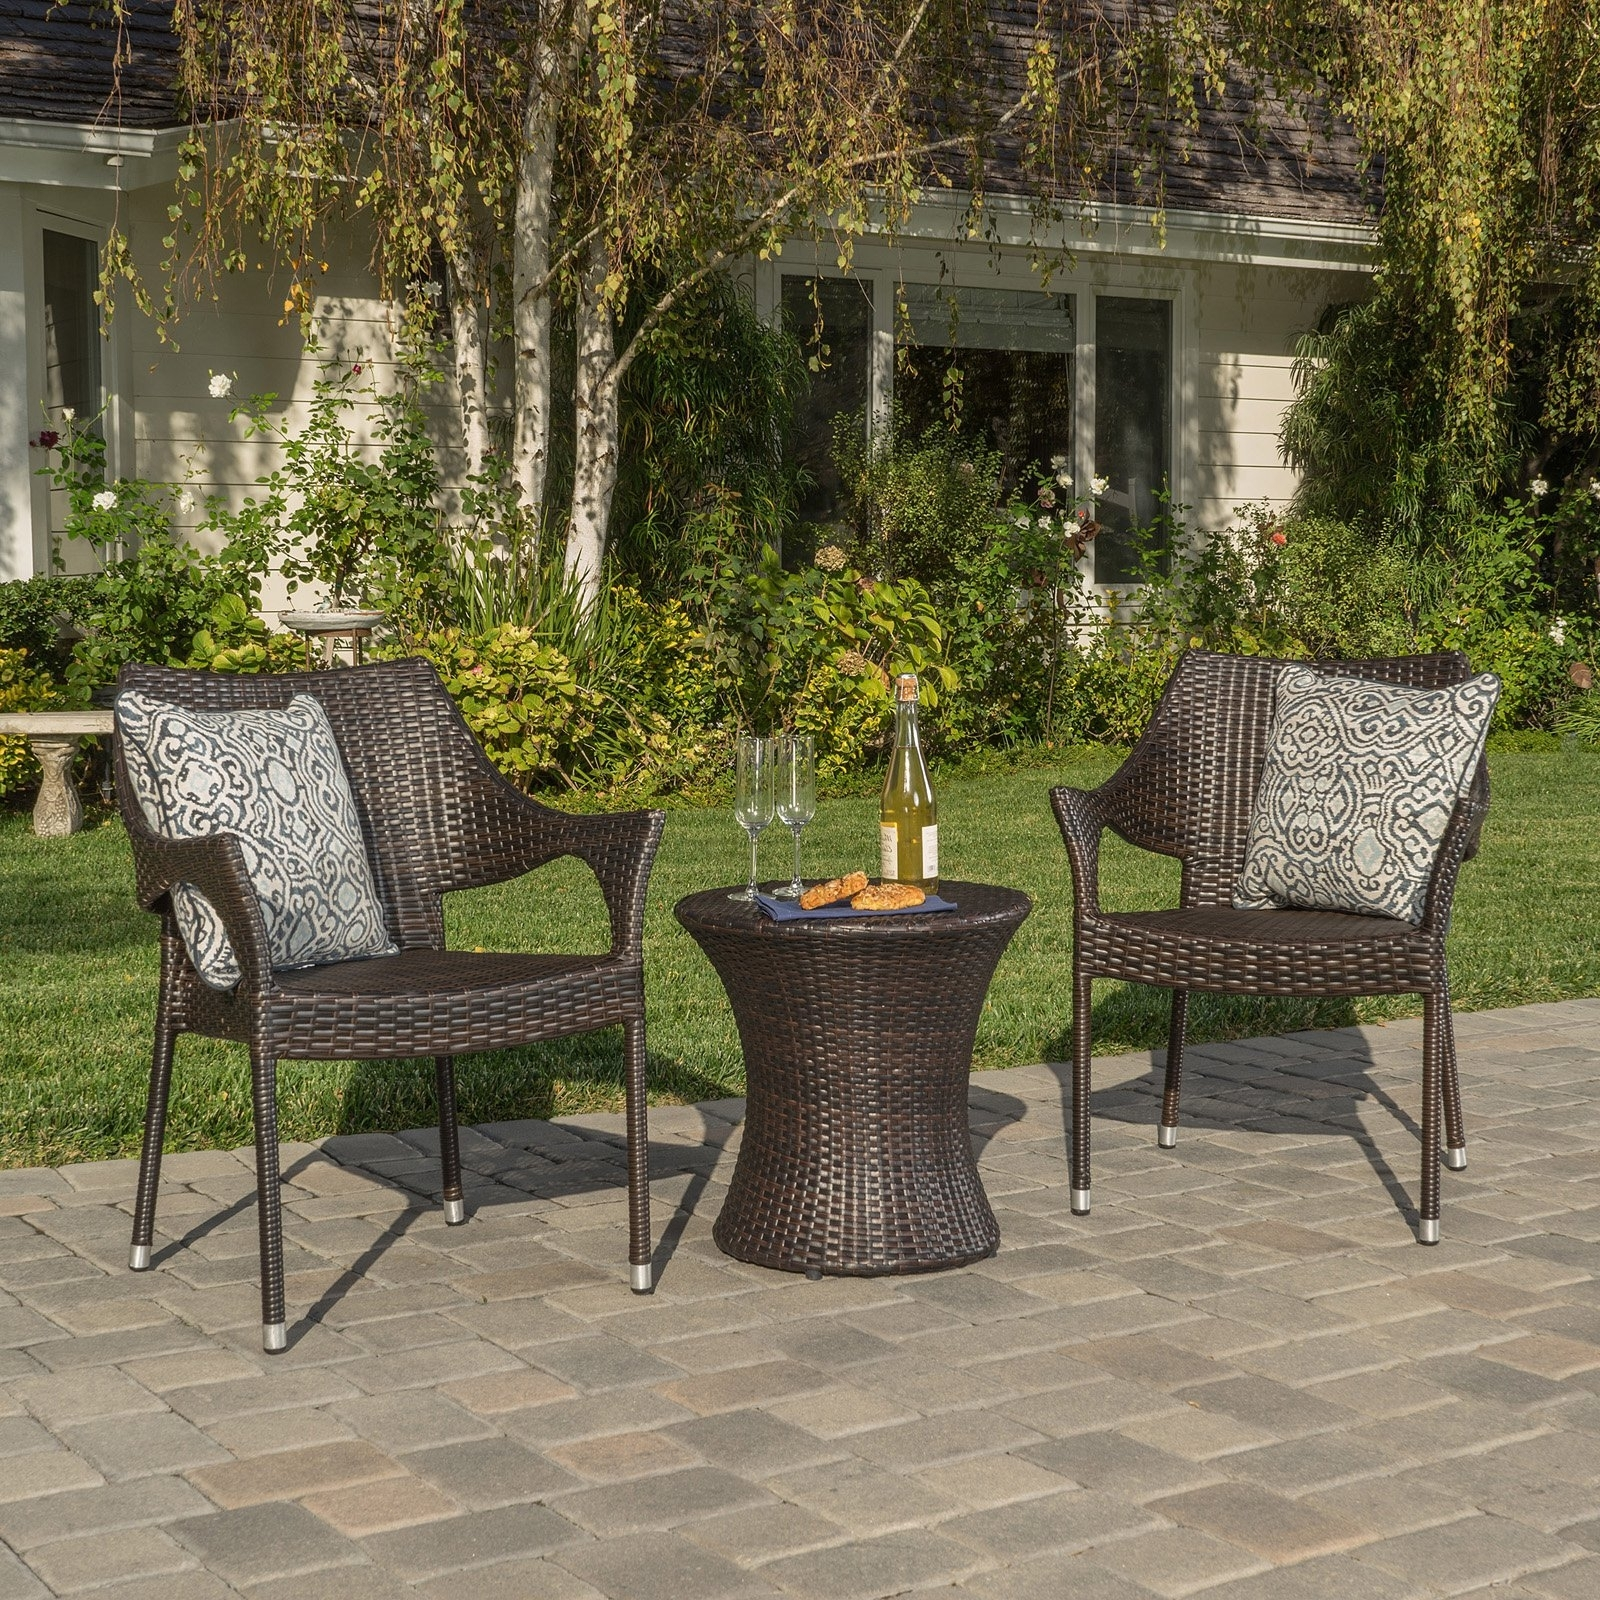 46 Patio Conversation Sets Under 300, Patio Conversation Set 4 Piece Pertaining To 2019 Patio Conversation Sets Under $ (View 5 of 20)